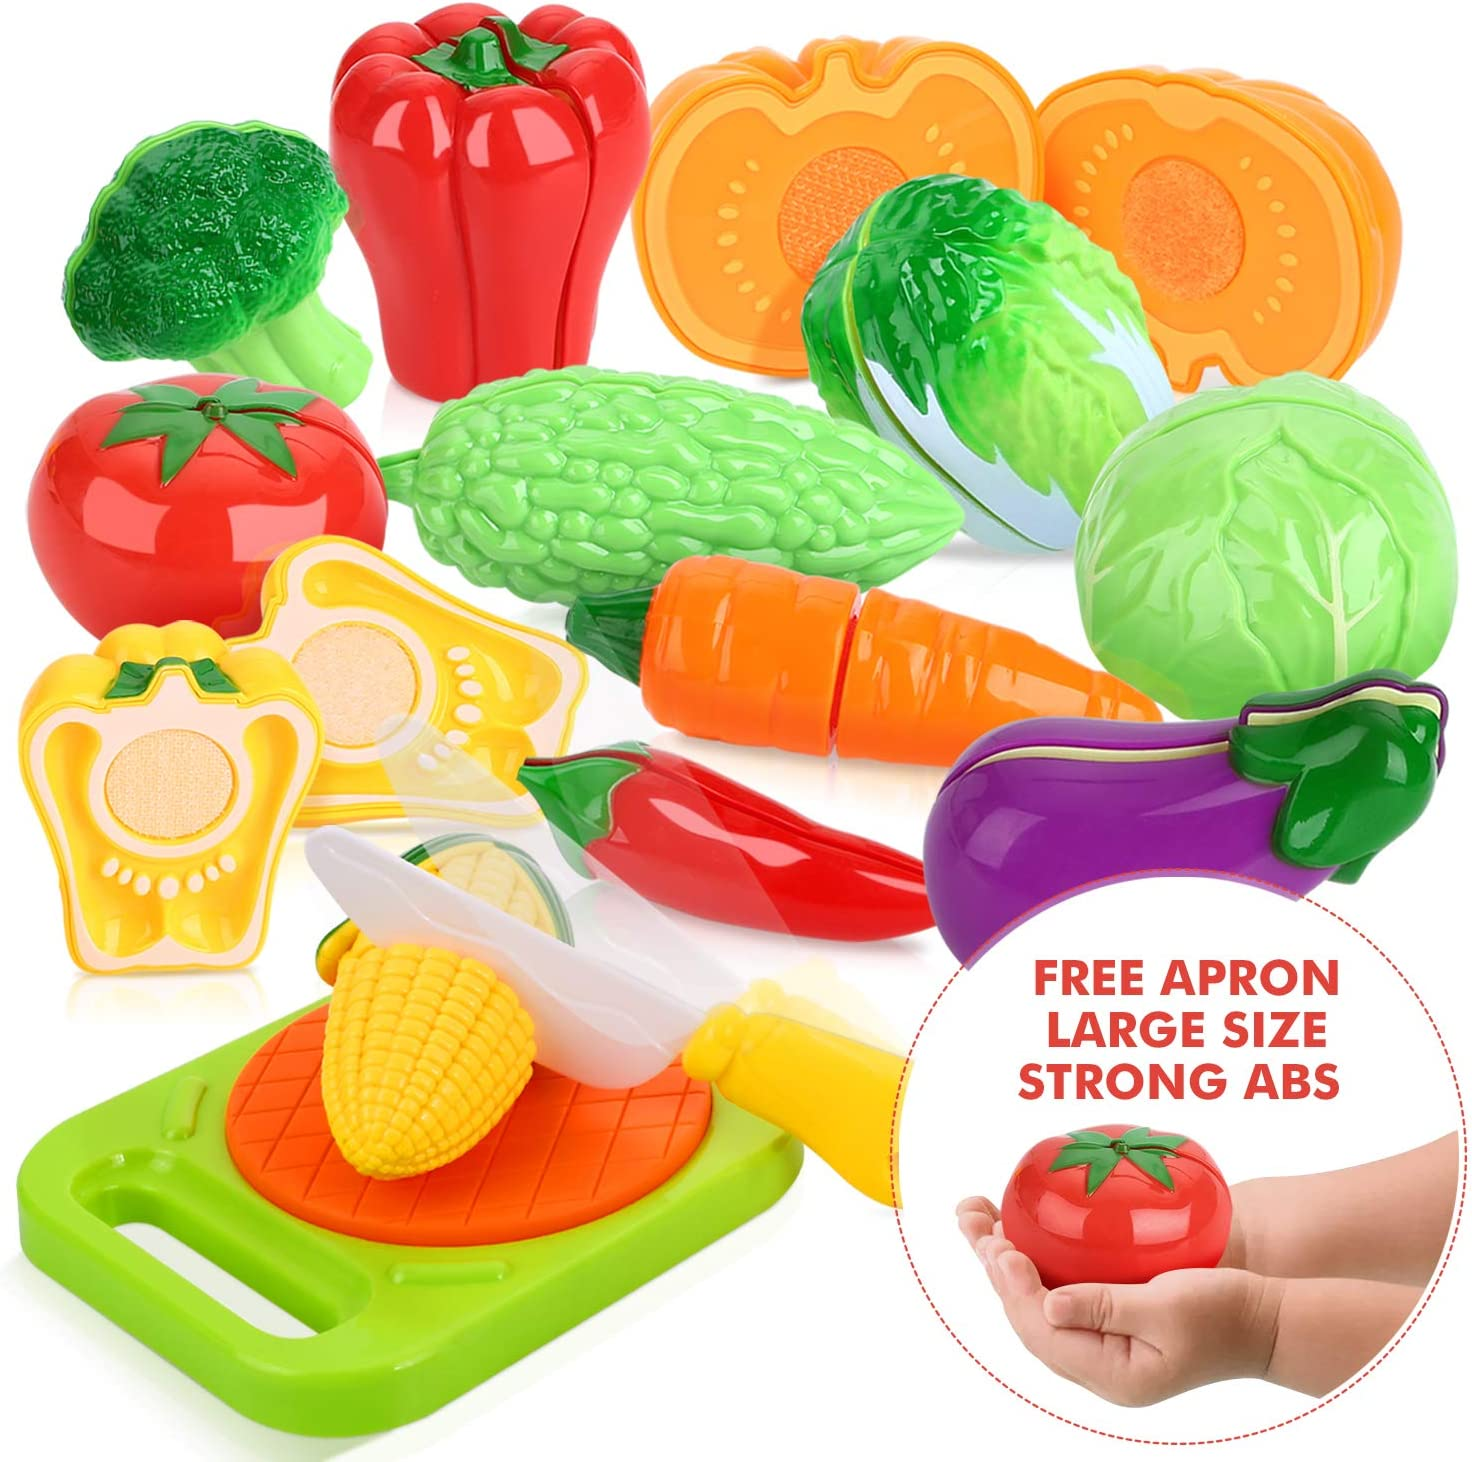 24Pcs Realistic Fruits Vegetables Plastic Cutting Kitchen Play Cooking Toys Kids